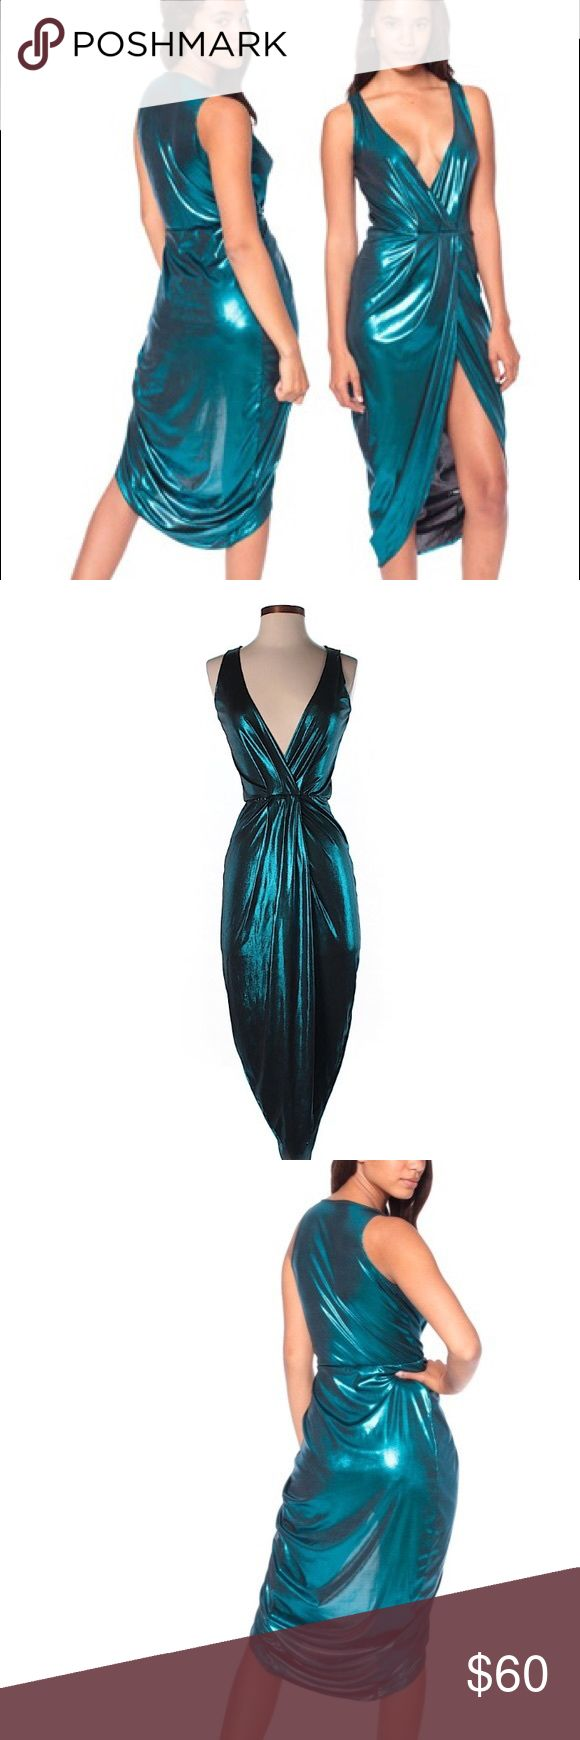 American Apparel Irridescent Teal Siren Dress Holographic Irridescent Siren Dress, Great Condition American Apparel Dresses Asymmetrical